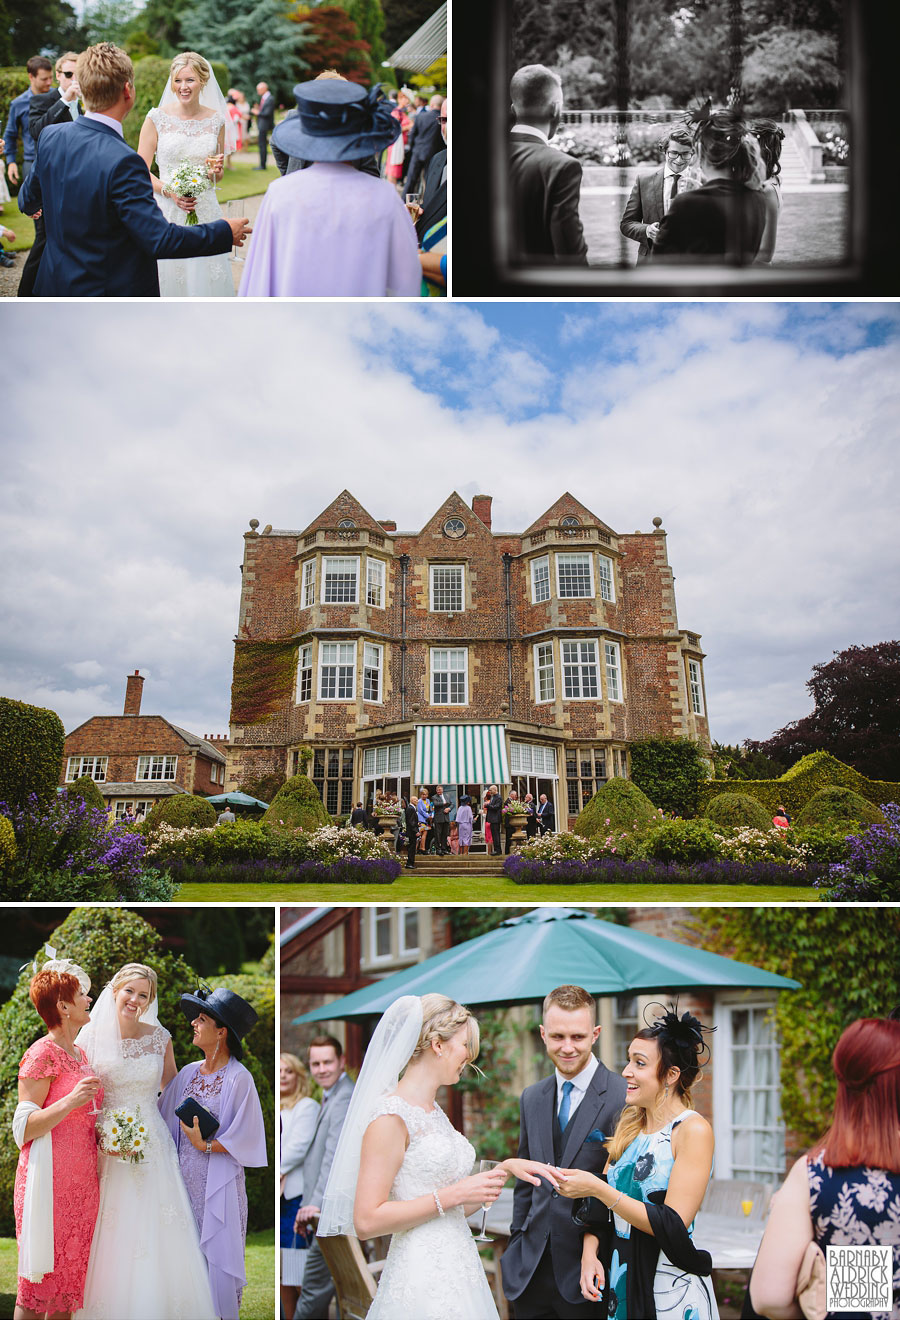 Goldsborough Hall Knaresborough Harrogate Wedding Photography by Yorkshire Wedding Photographer Barnaby Aldrick 036